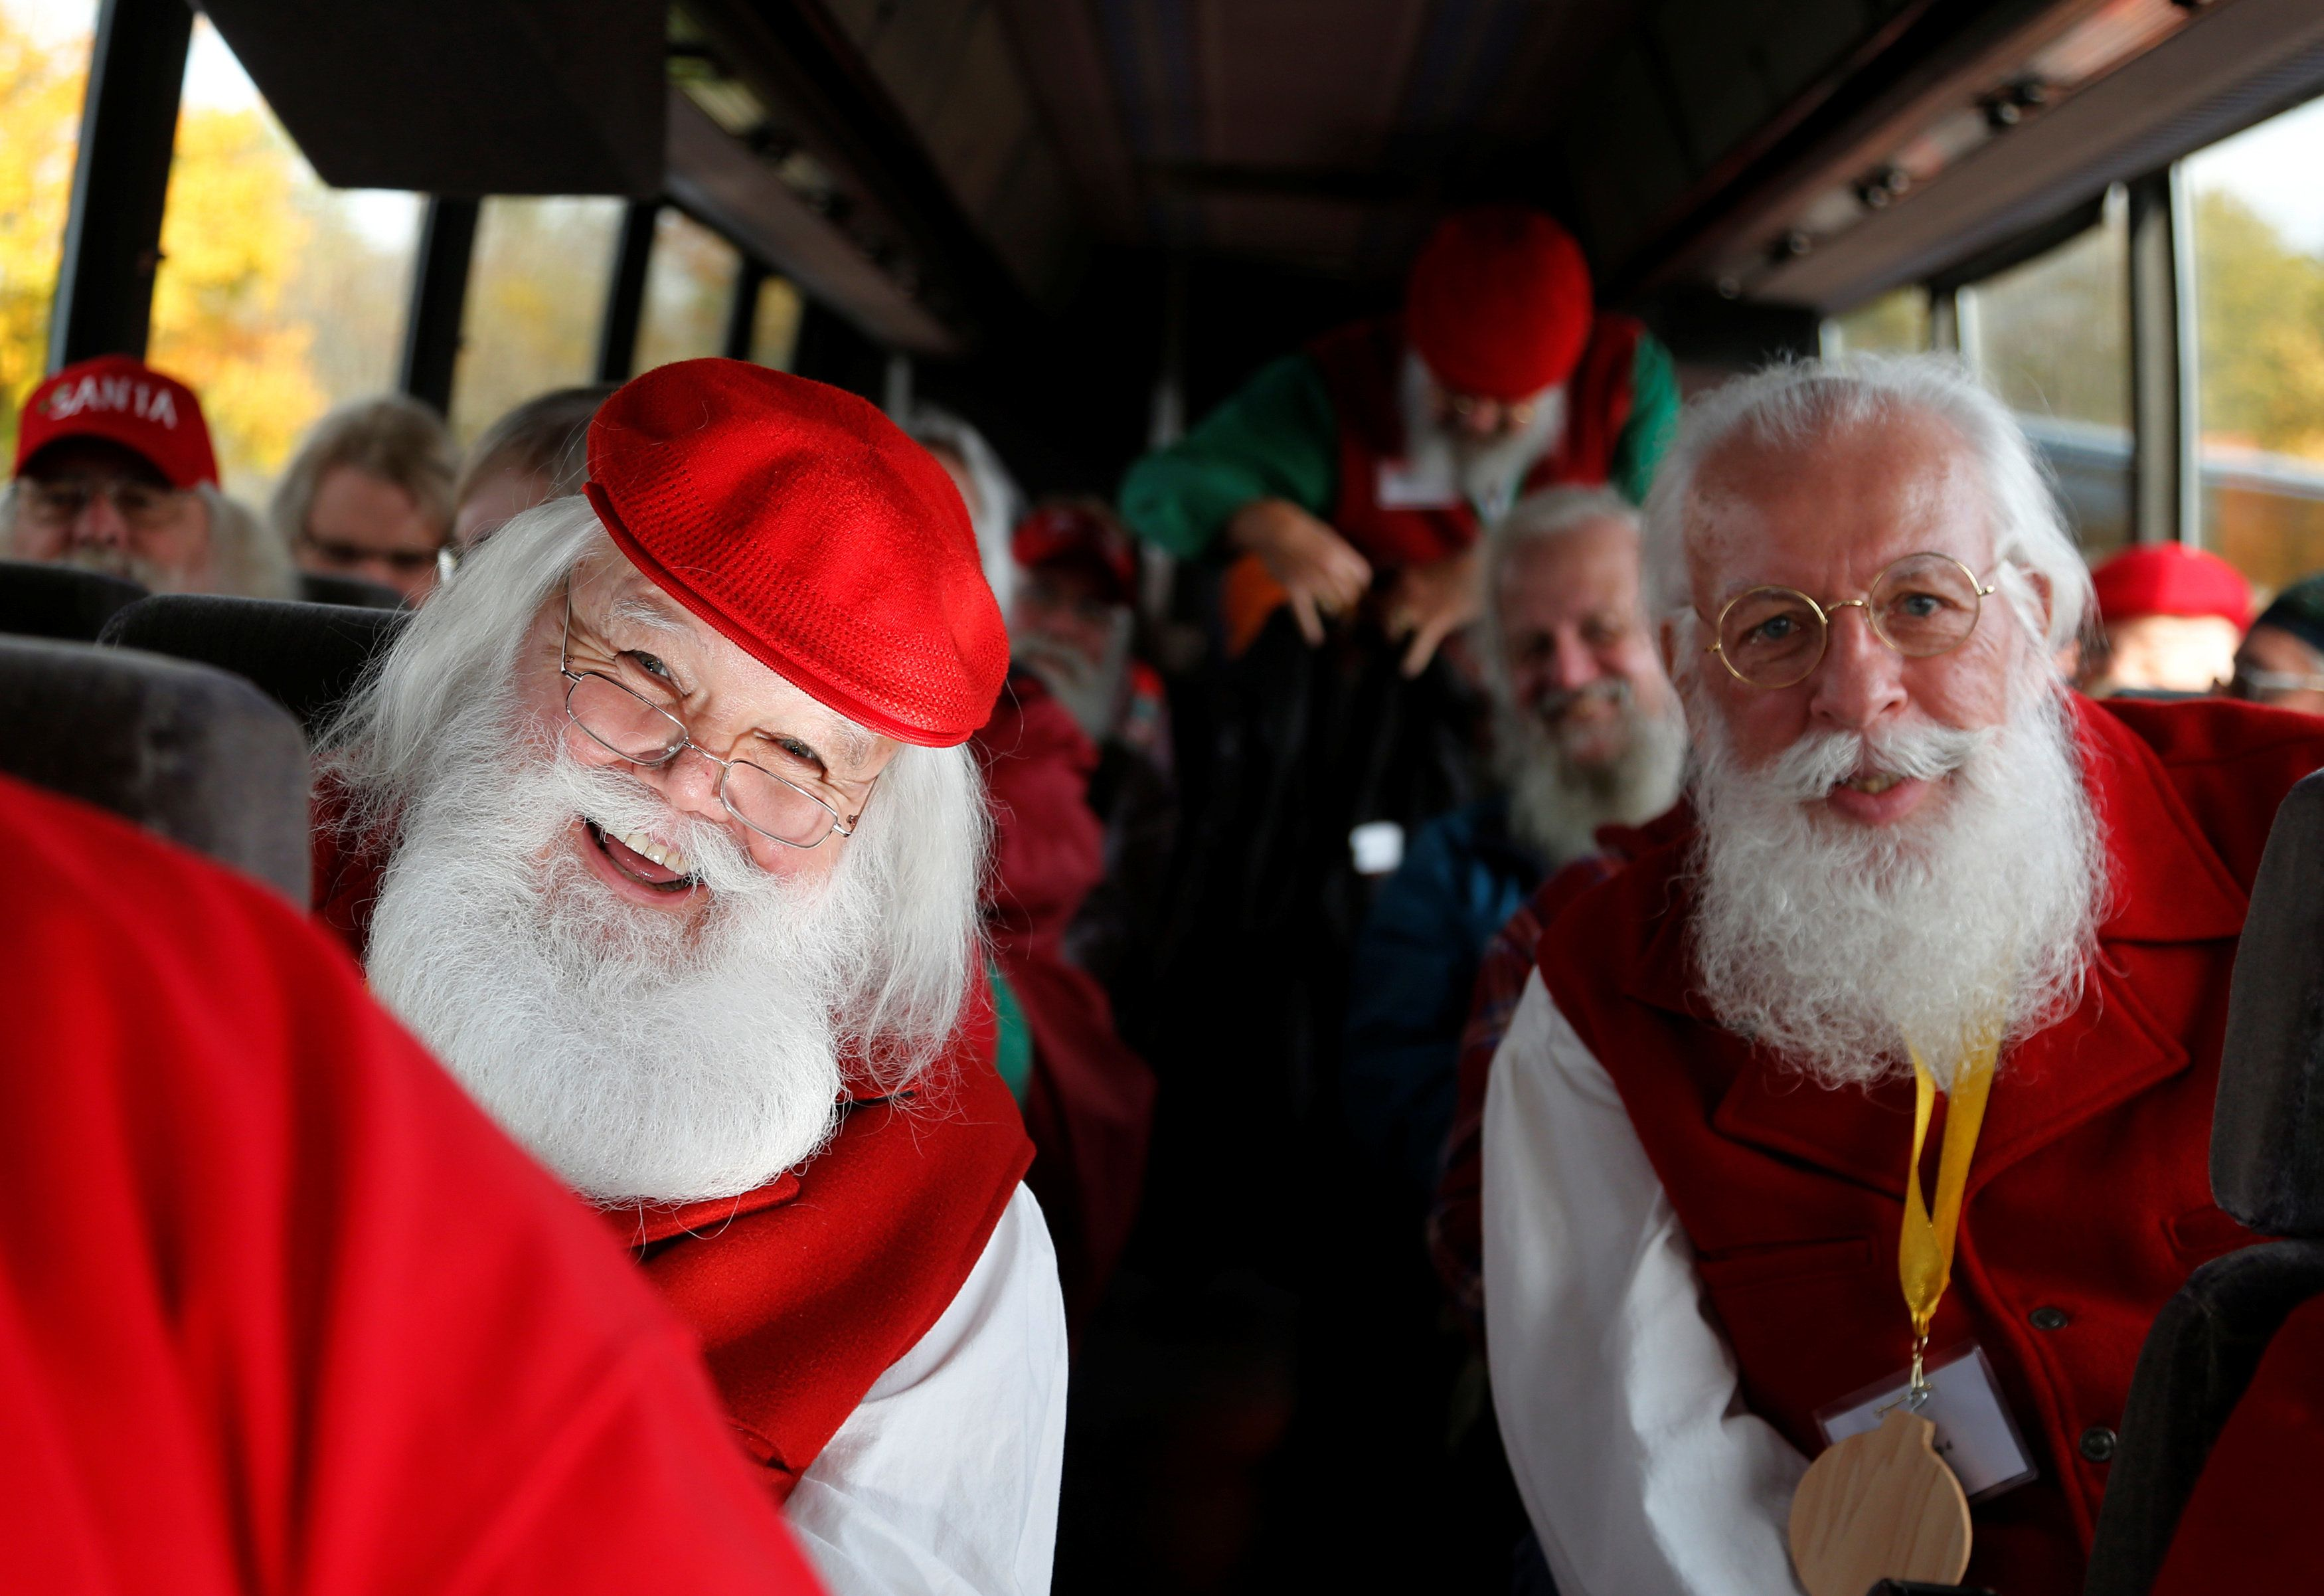 Santas from across the world visit the Charles W. Howard Santa Claus School in Midland, Michigan, to learn the tricks of the